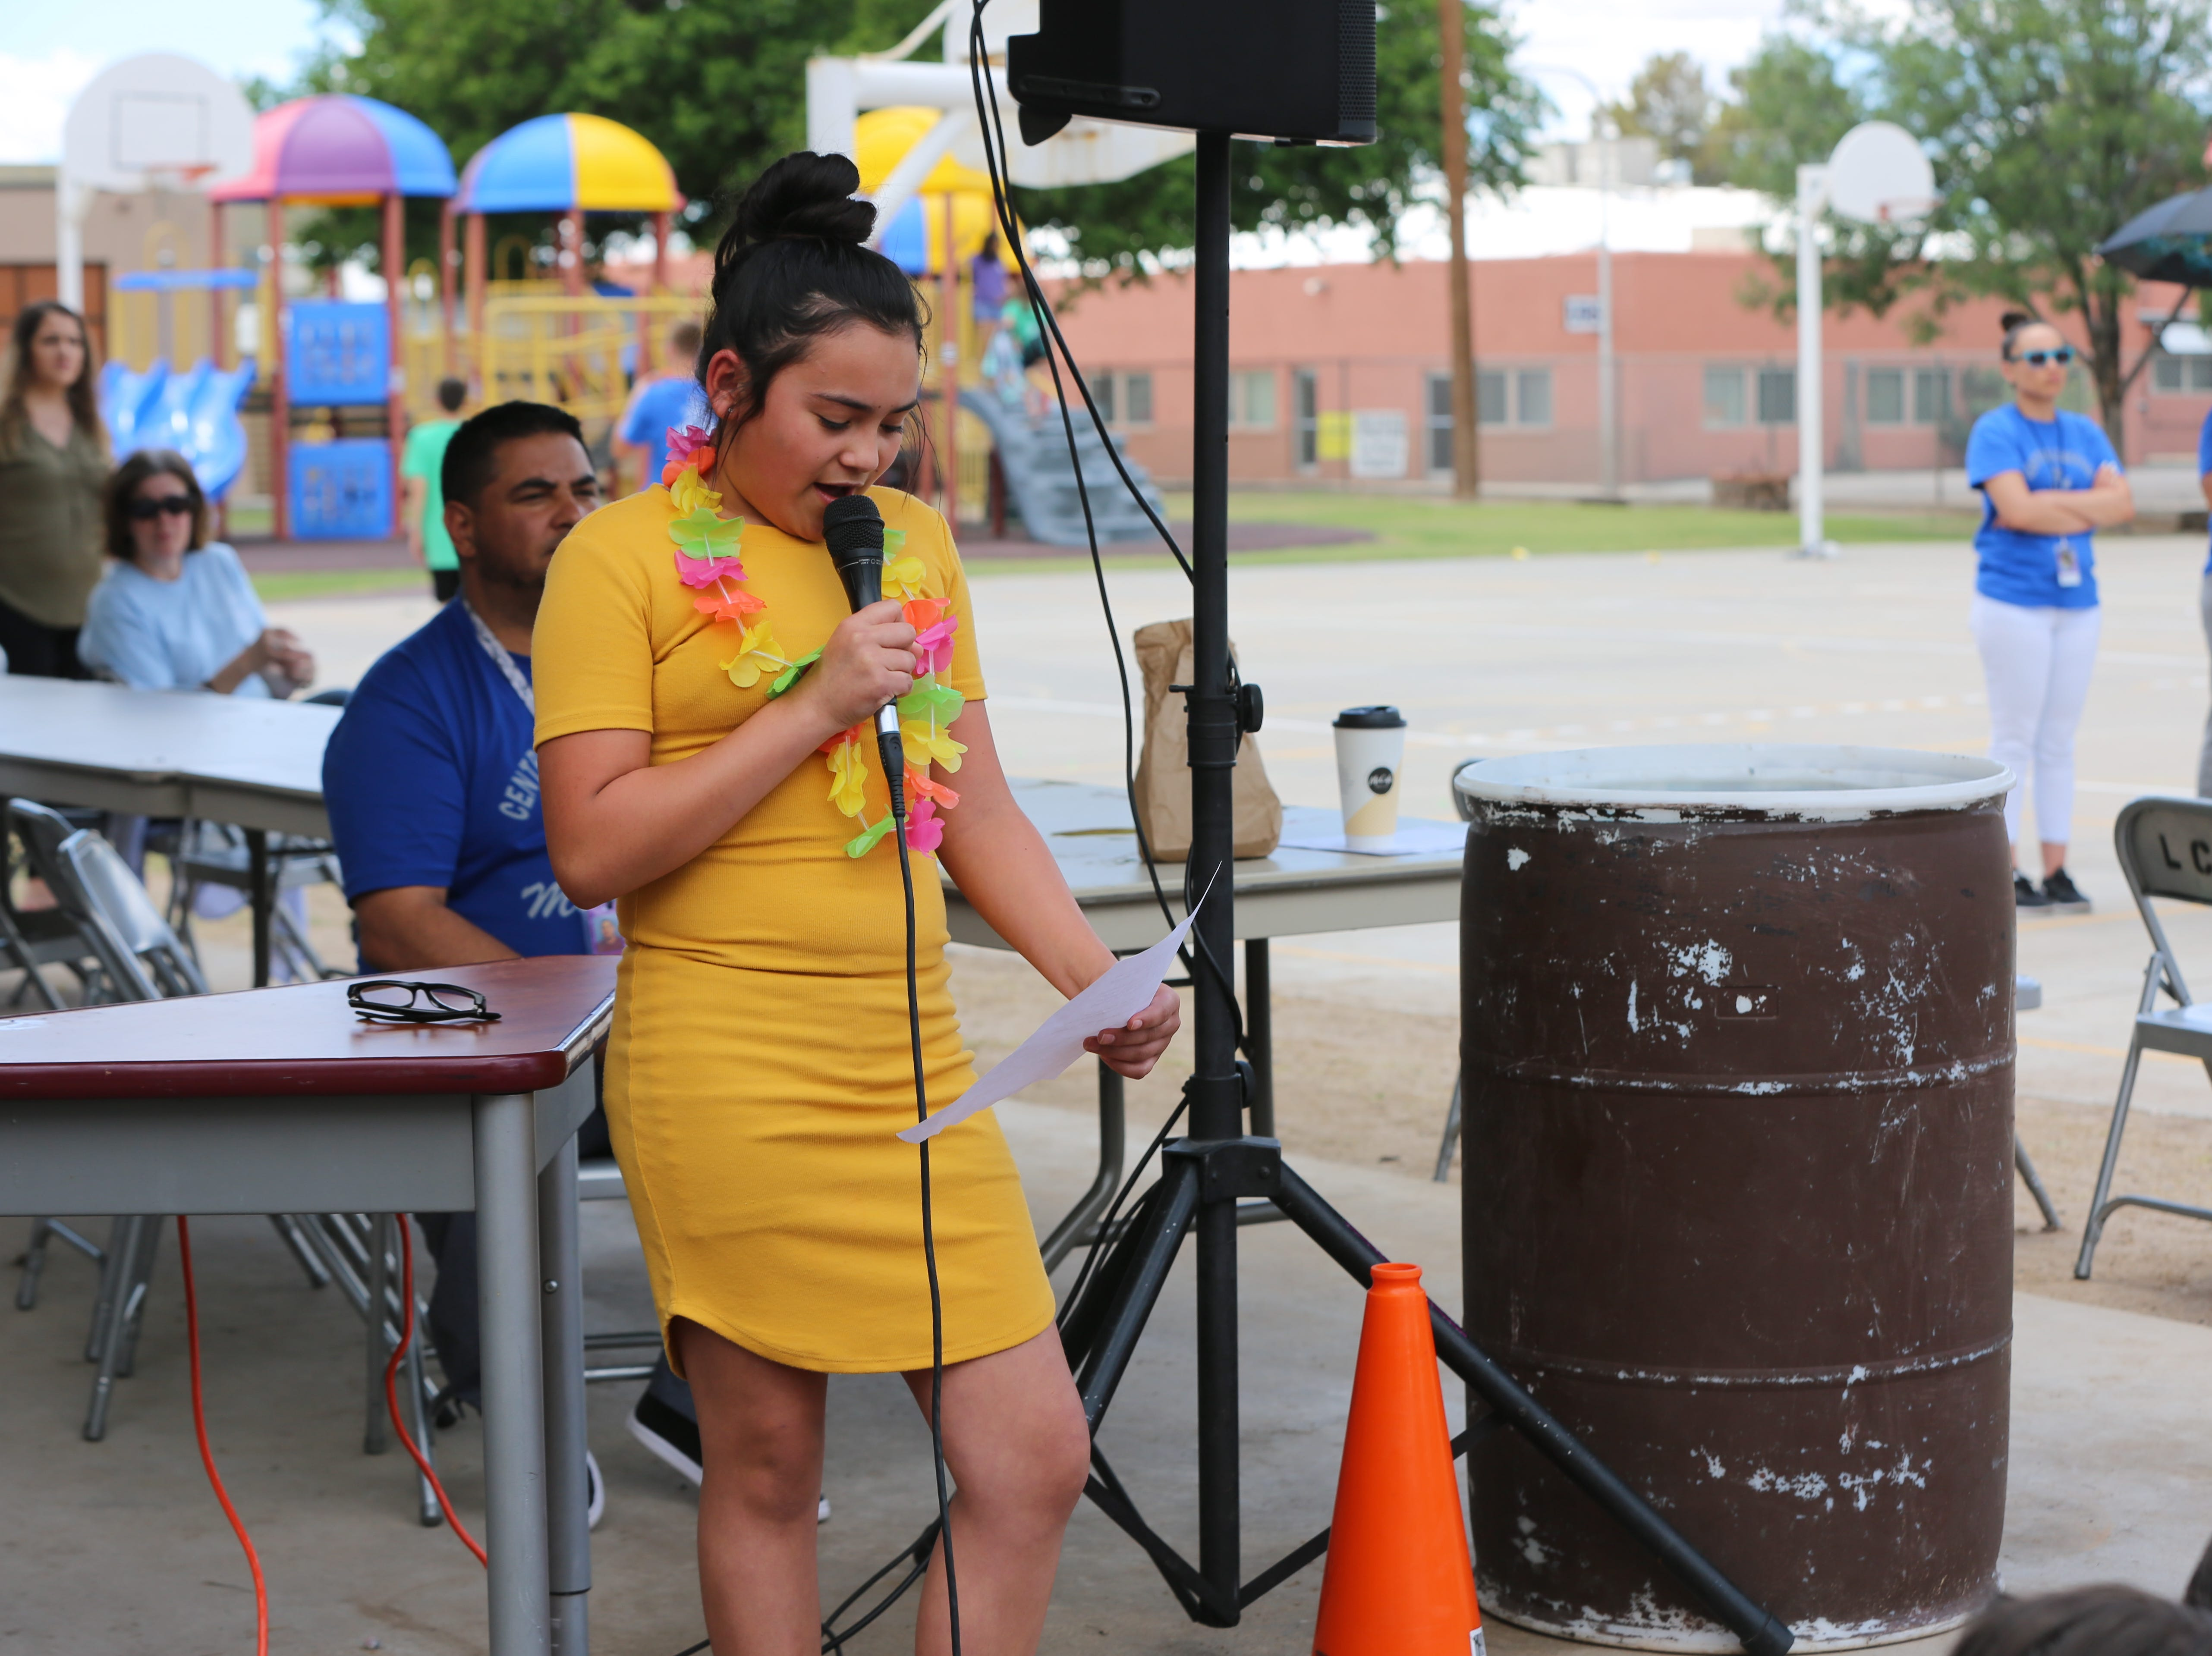 Ebeney Villa, 11, a fifth-grader at Central Elementary School, is the school's student council president. Villa read a speech to her student body regarding the school's 70th anniversary Wednesday, April 24.